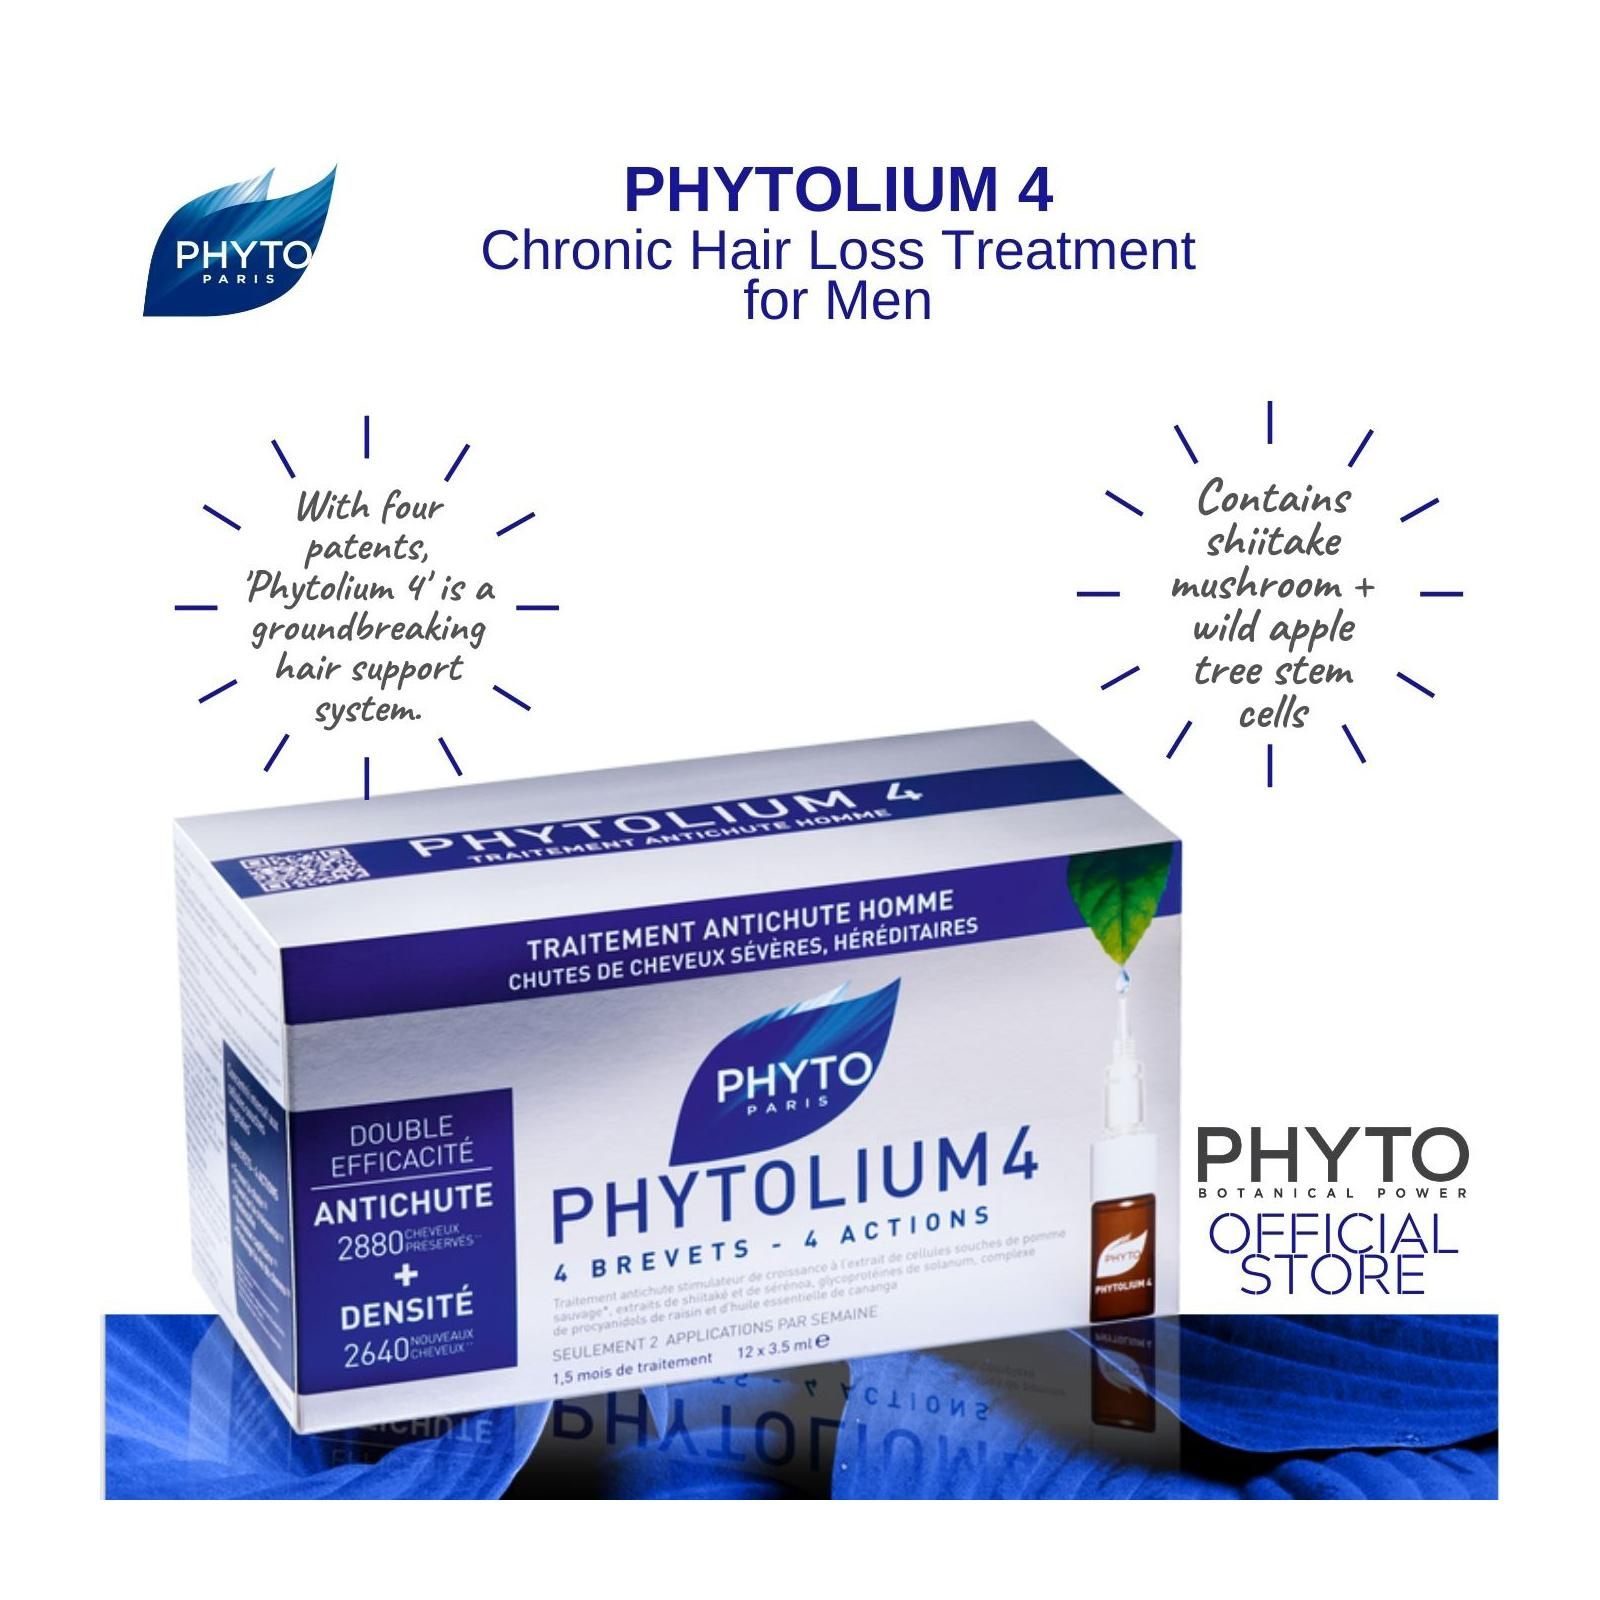 Phyto Phytolium 4 Anti-Hair Loss Concentrate With Botanical Stem Cells (88% Efficacy)